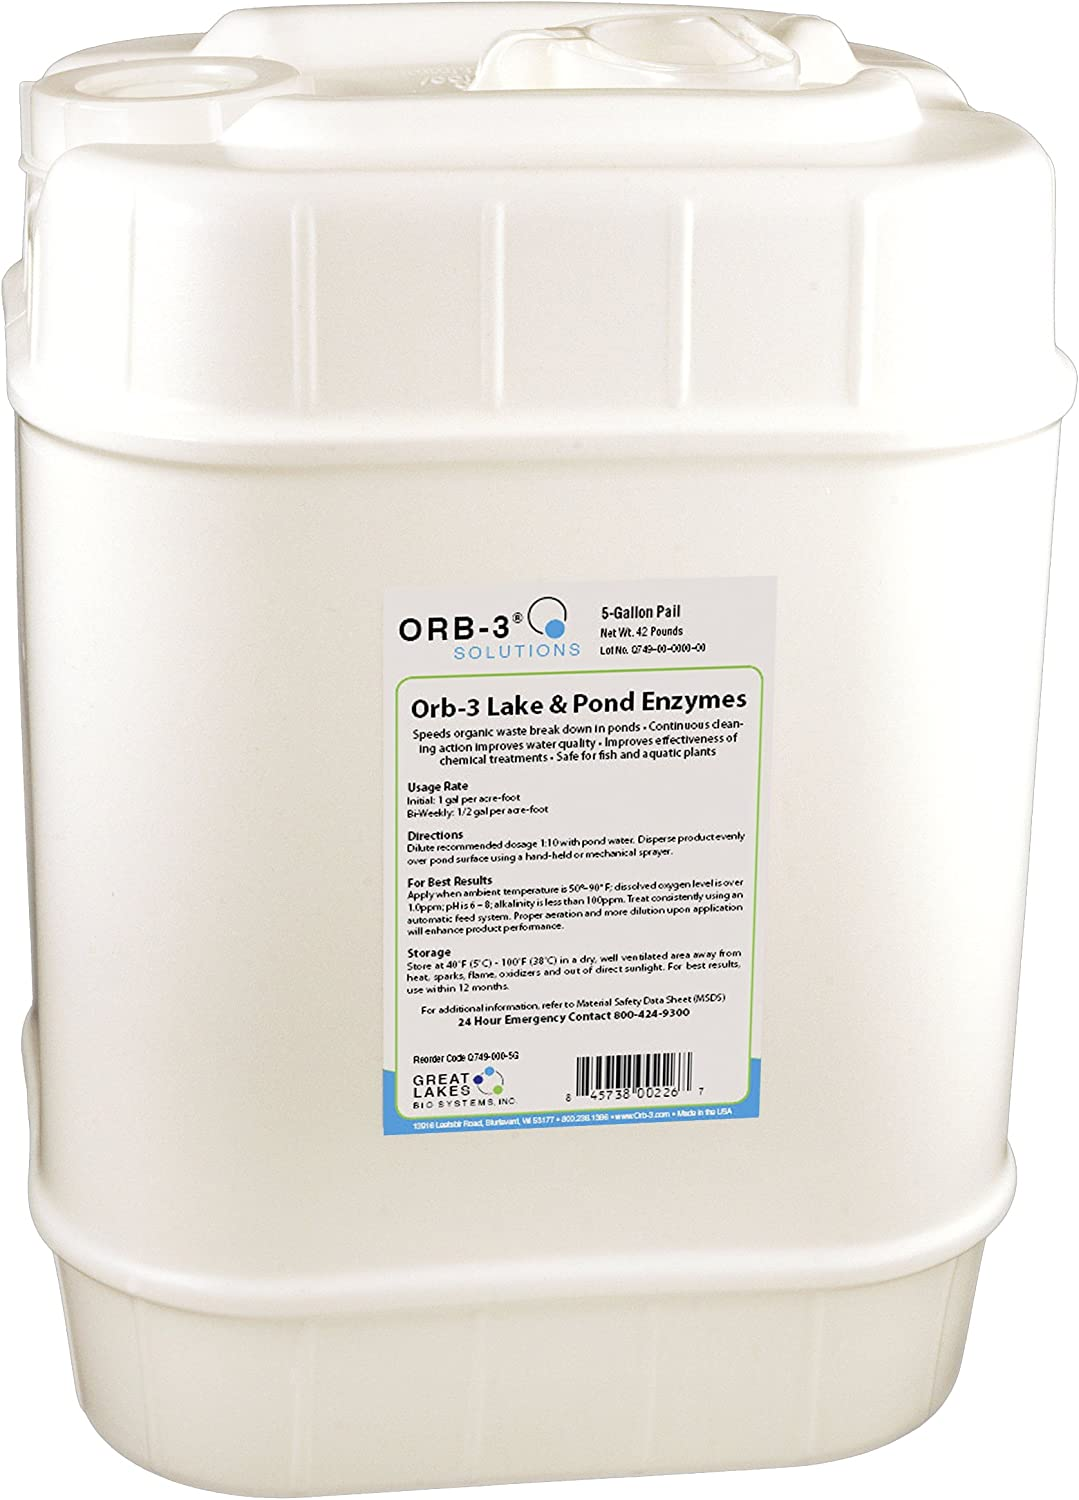 Orb-3 Lake and Pond Enzymes Pail, 5-Gallon